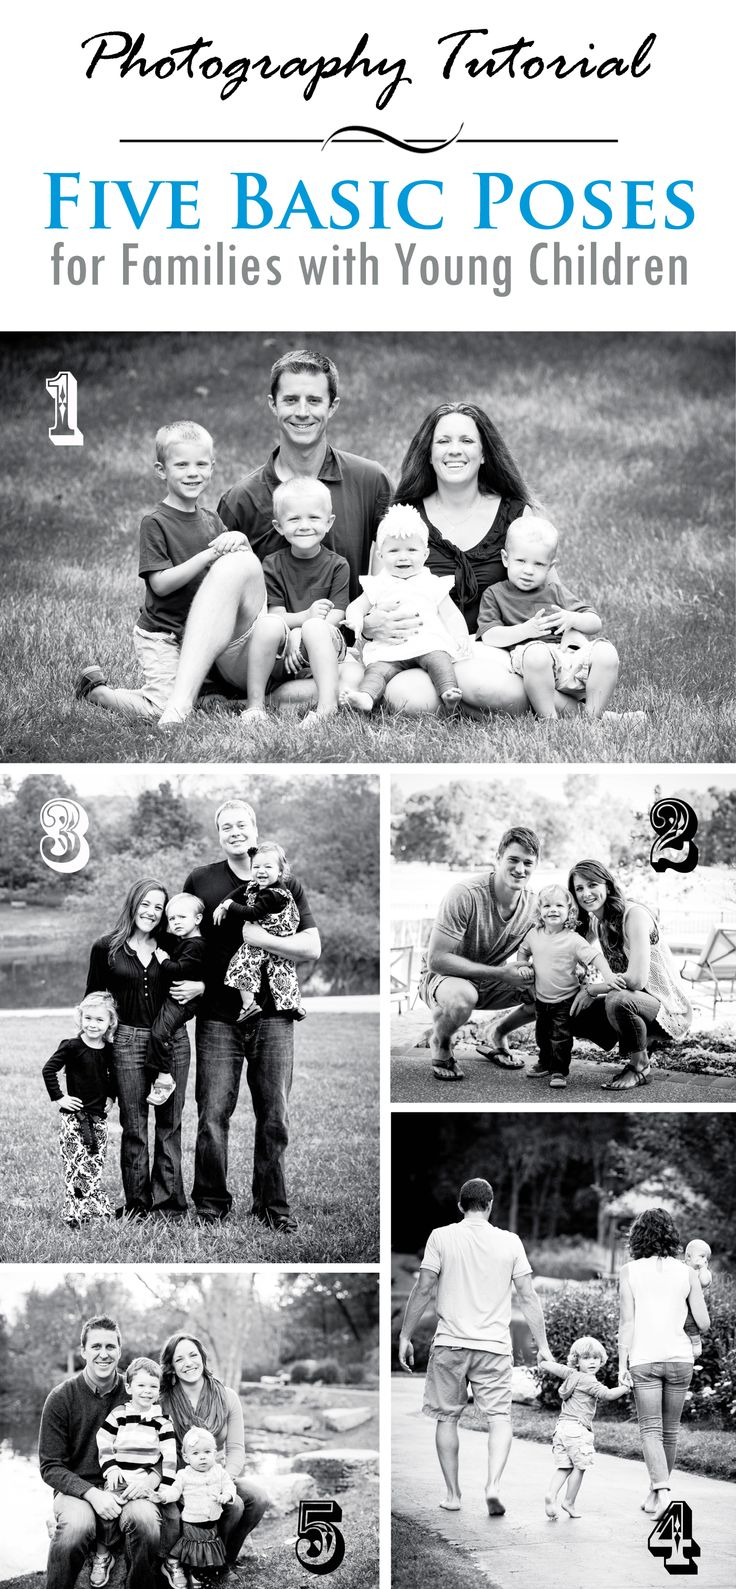 5 Basic Photography Poses for Families with Young Children